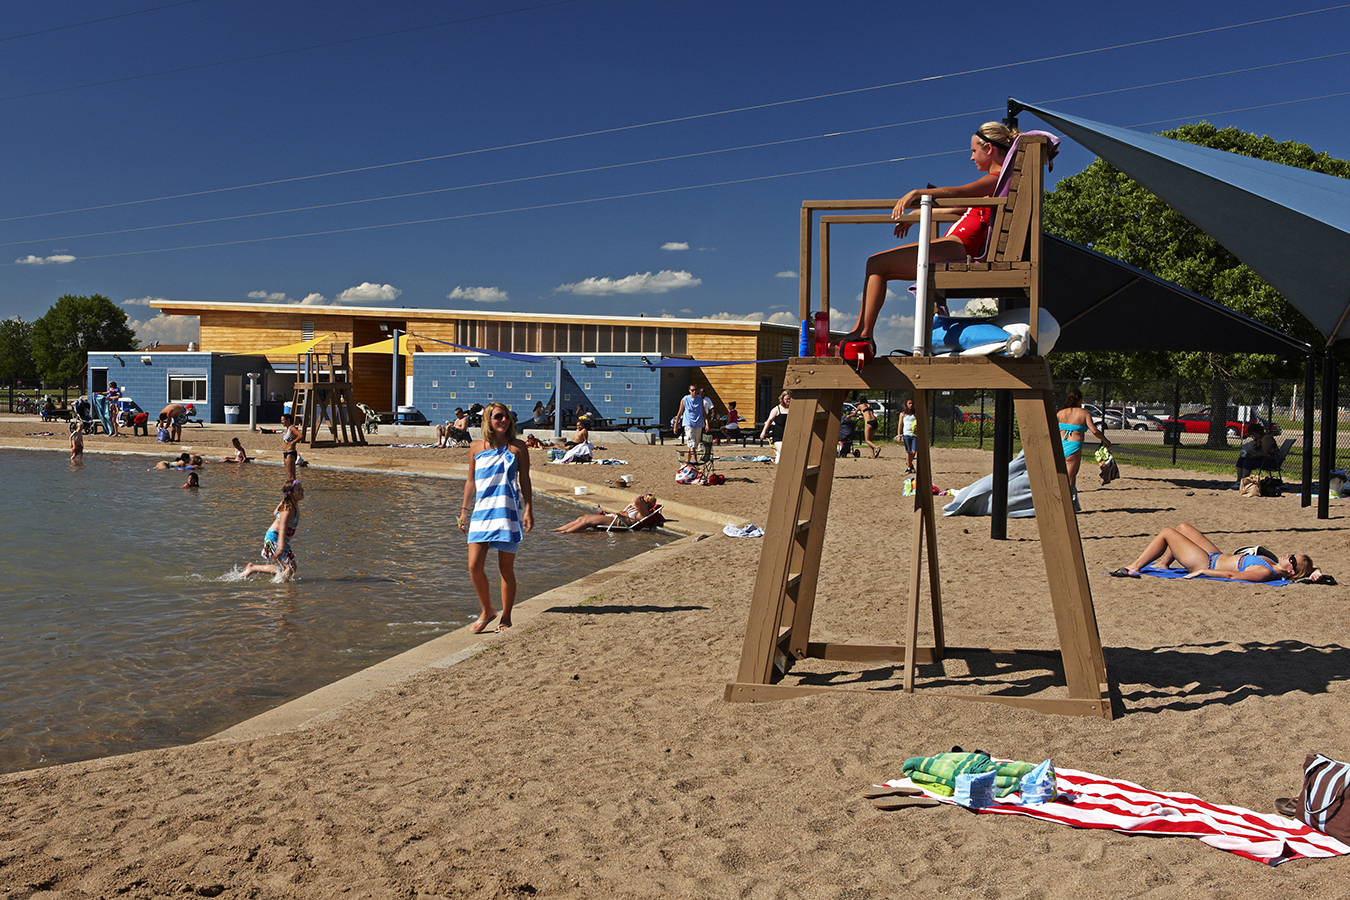 SANDVENTURE AQUATIC FACILITY